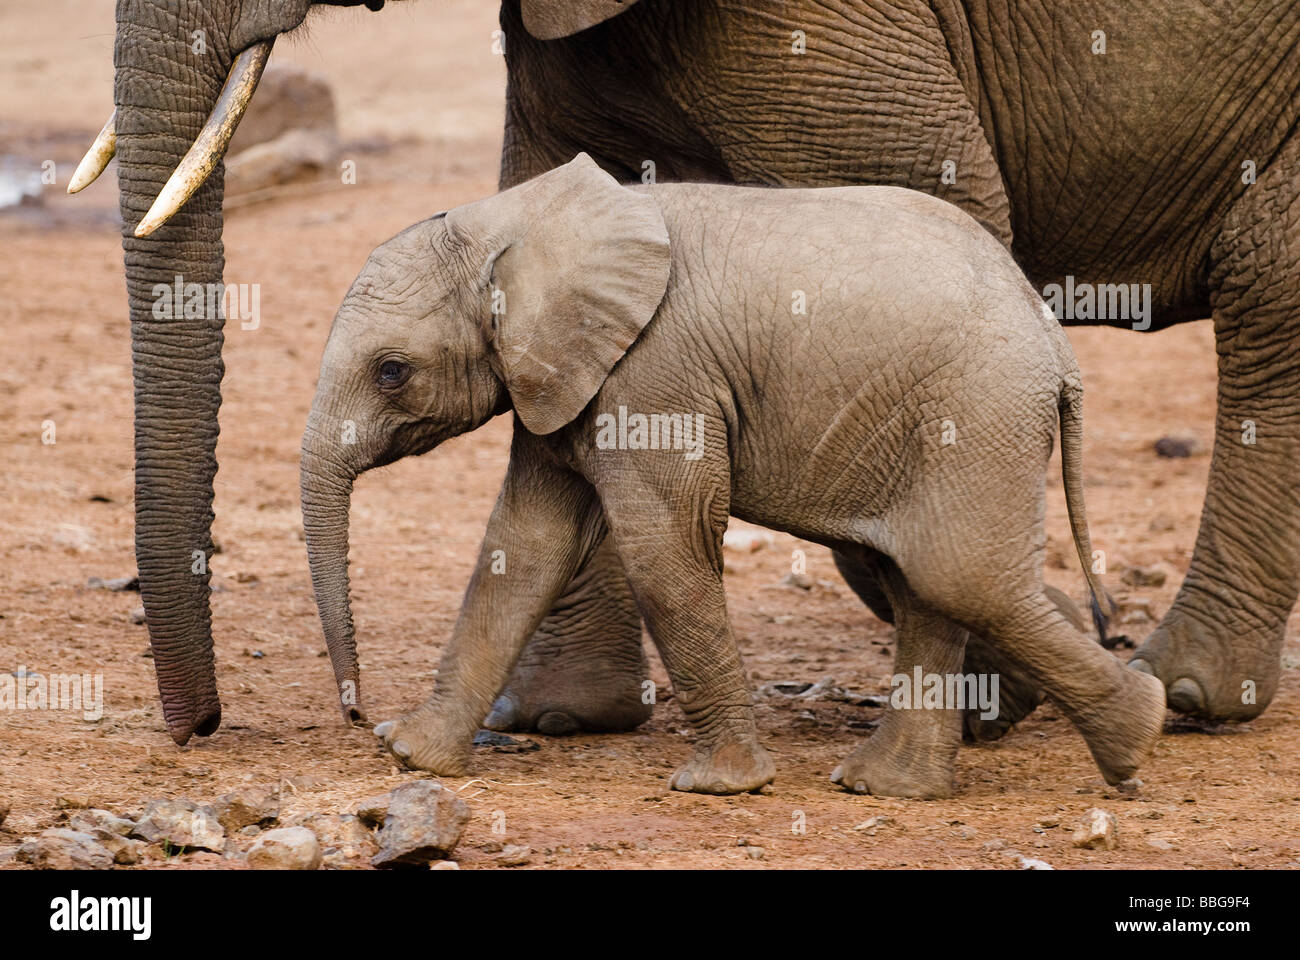 young African Elephant baby Loxodonta africana THE ARK ABERDARE NATIONAL PARK KENYA East Africa - Stock Image